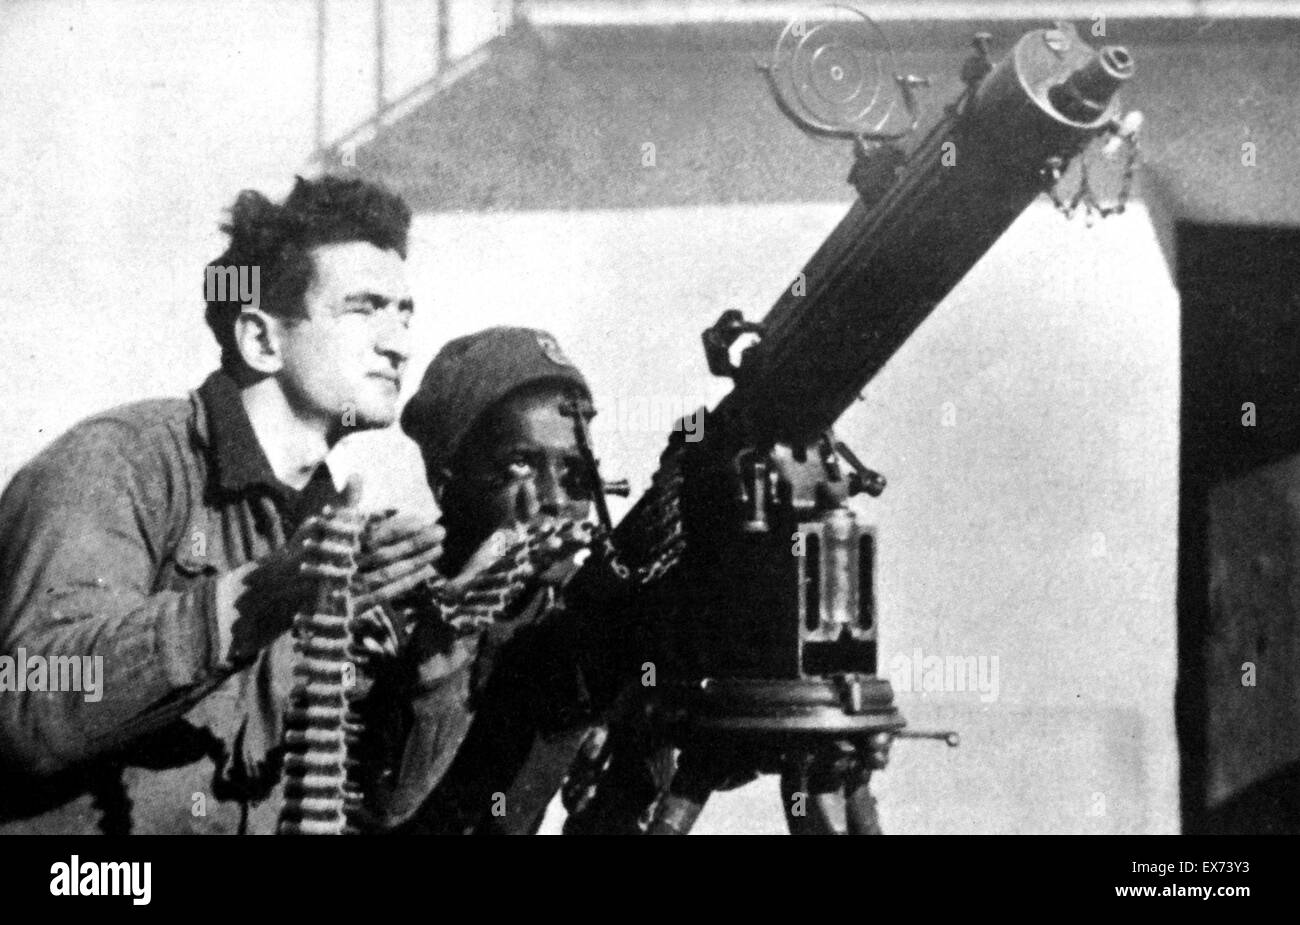 Republican soldiers use anti aircraft gun to defend madrid 1938 during the spanish civil